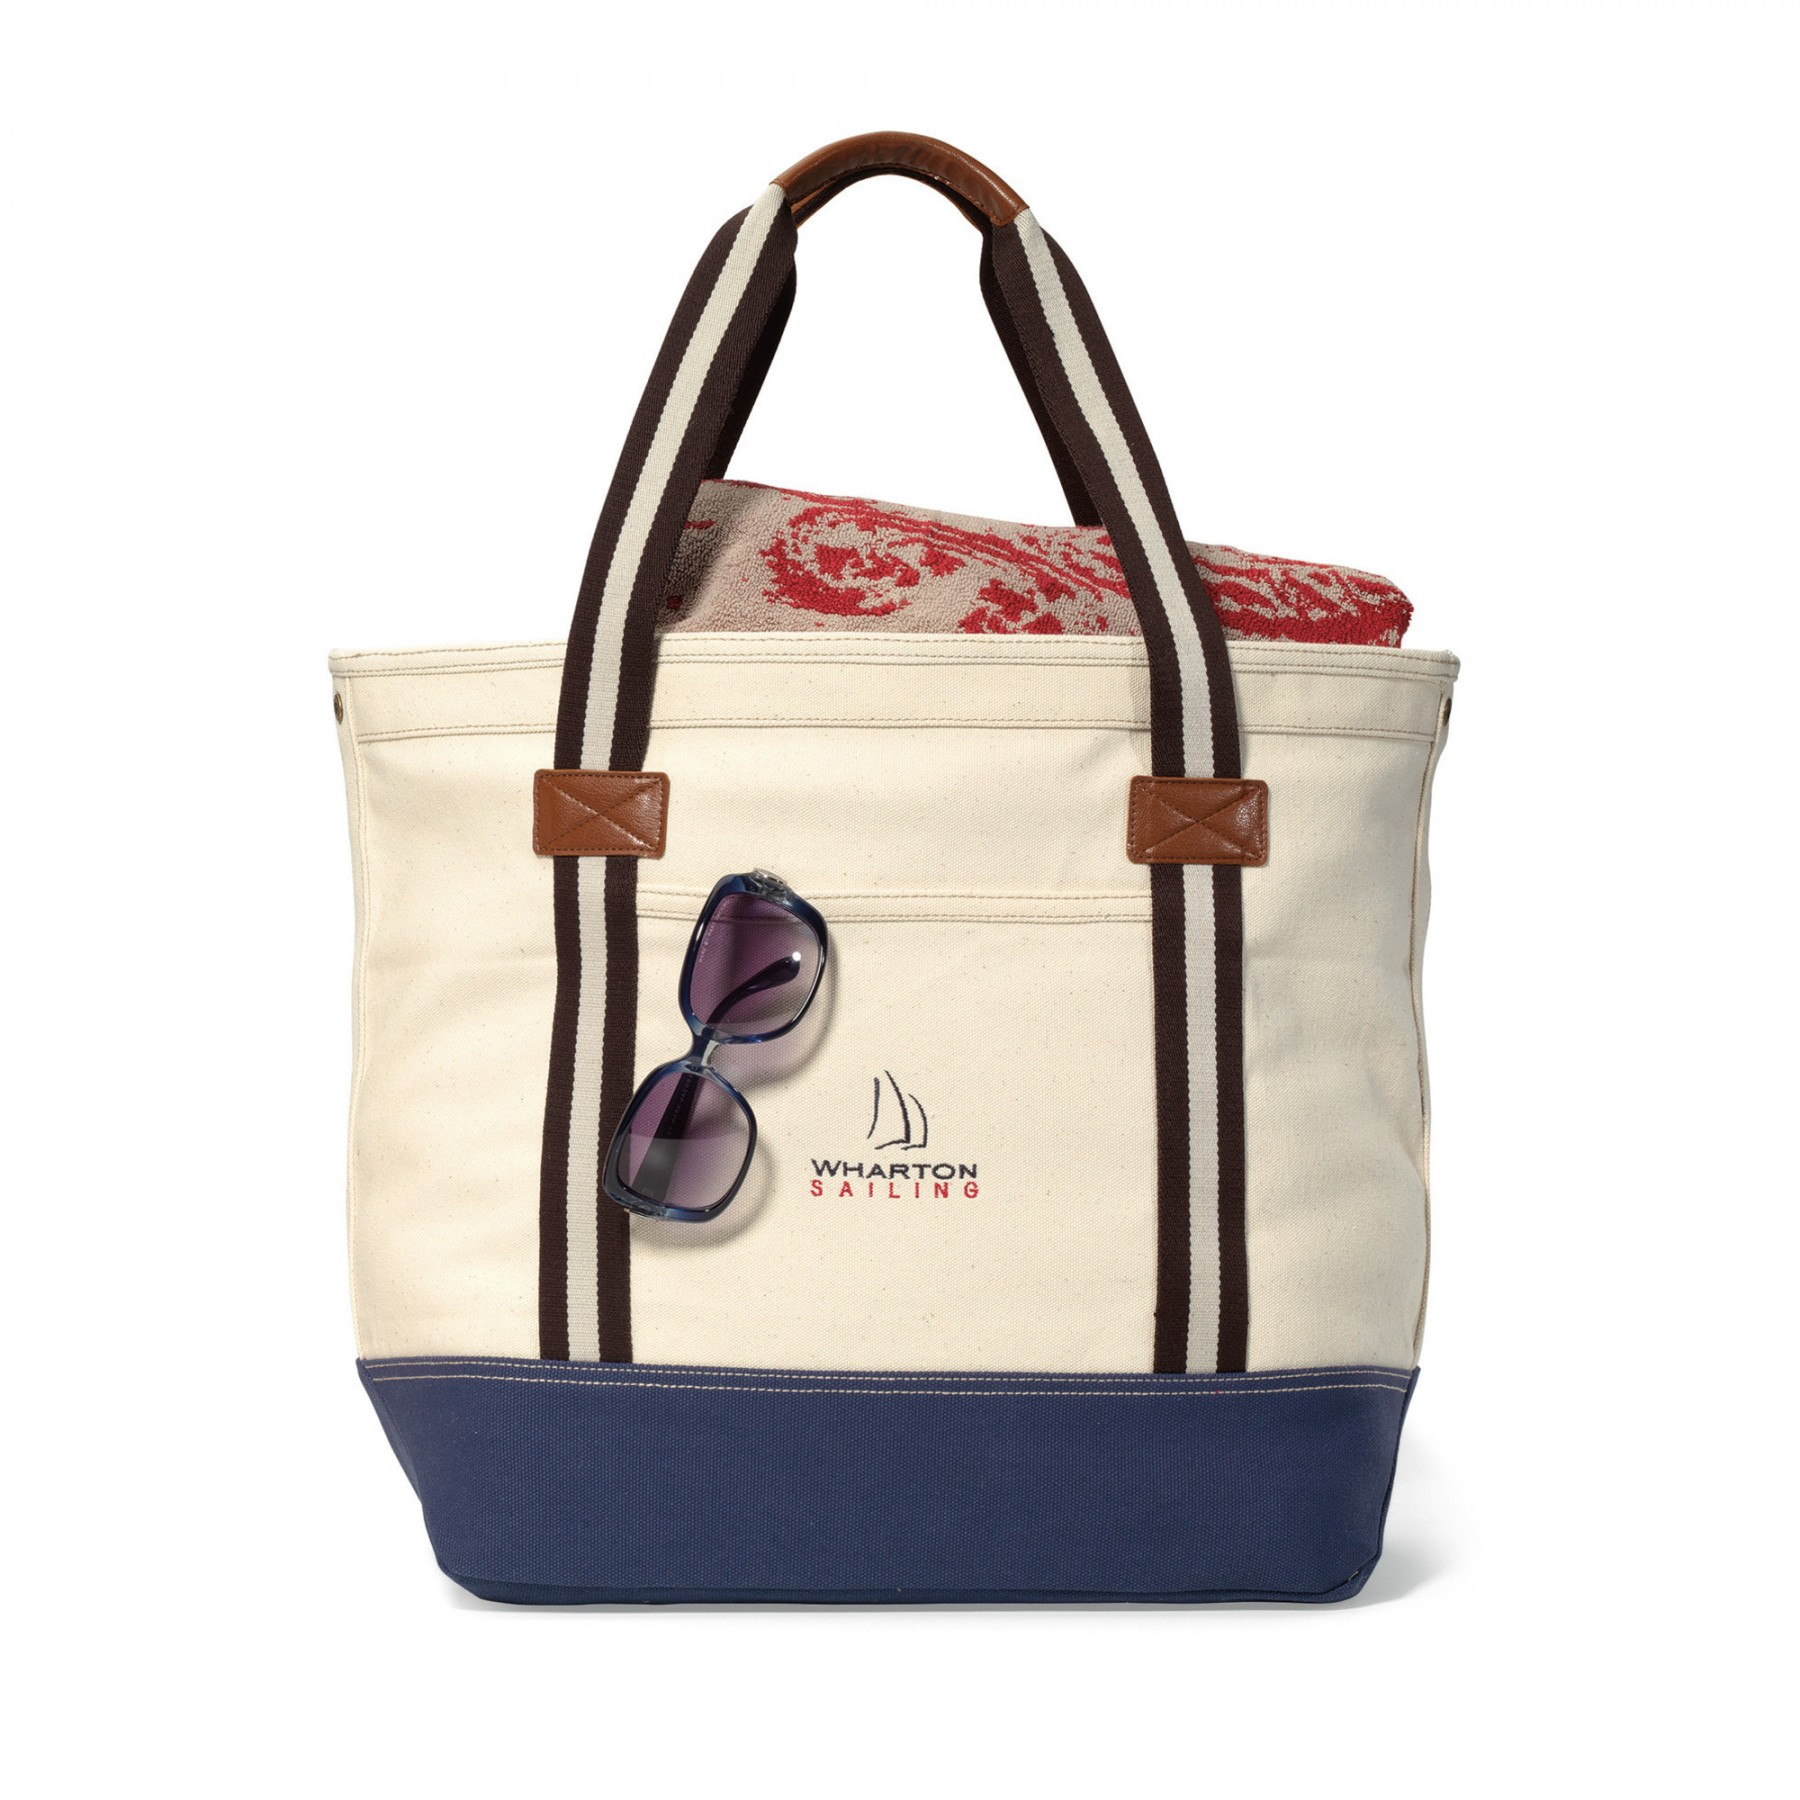 Heritage Supply Catalina Cotton Tote